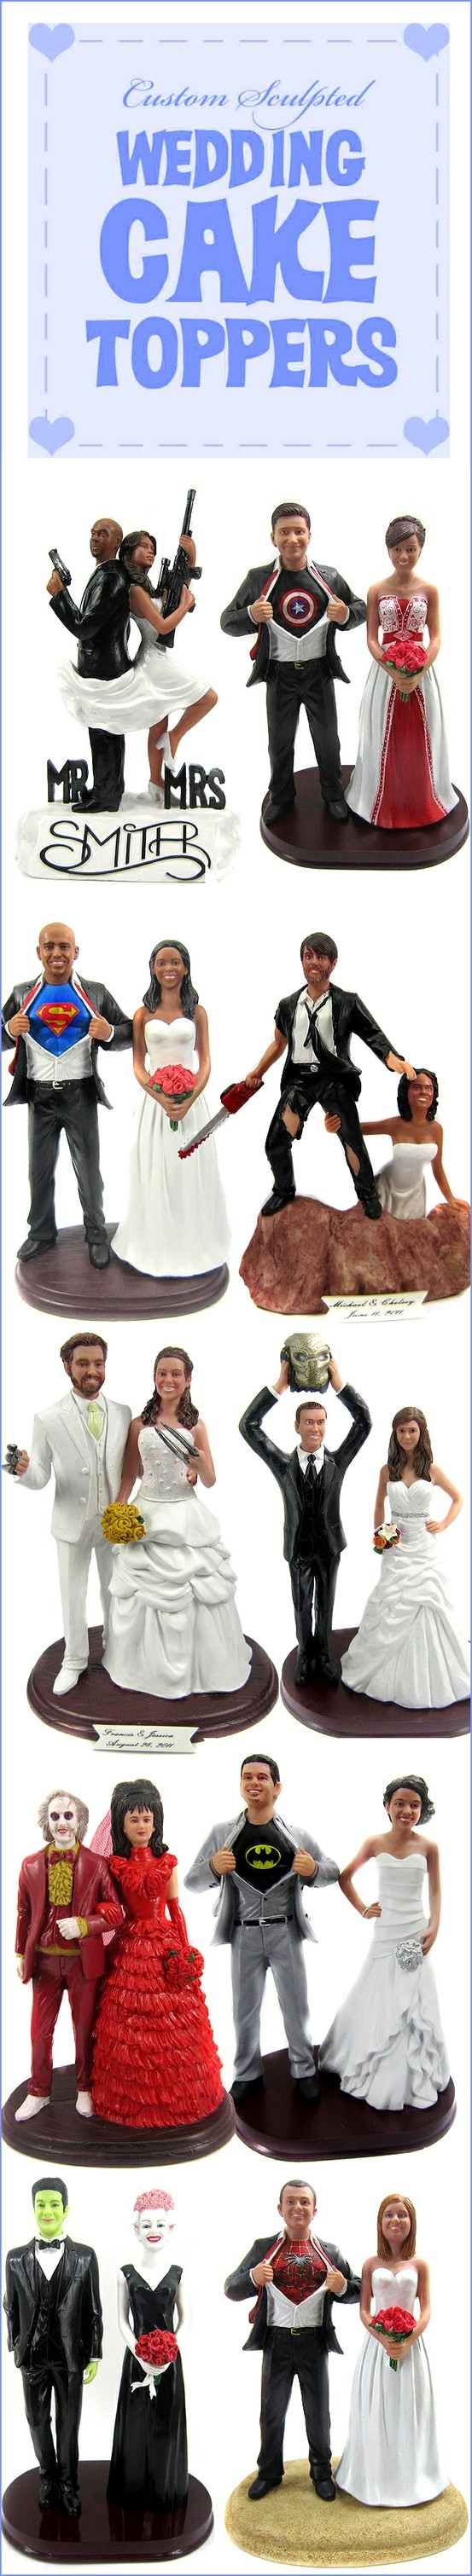 Some Funny Wedding Cake Toppers for Your Wedding Day Check more ...